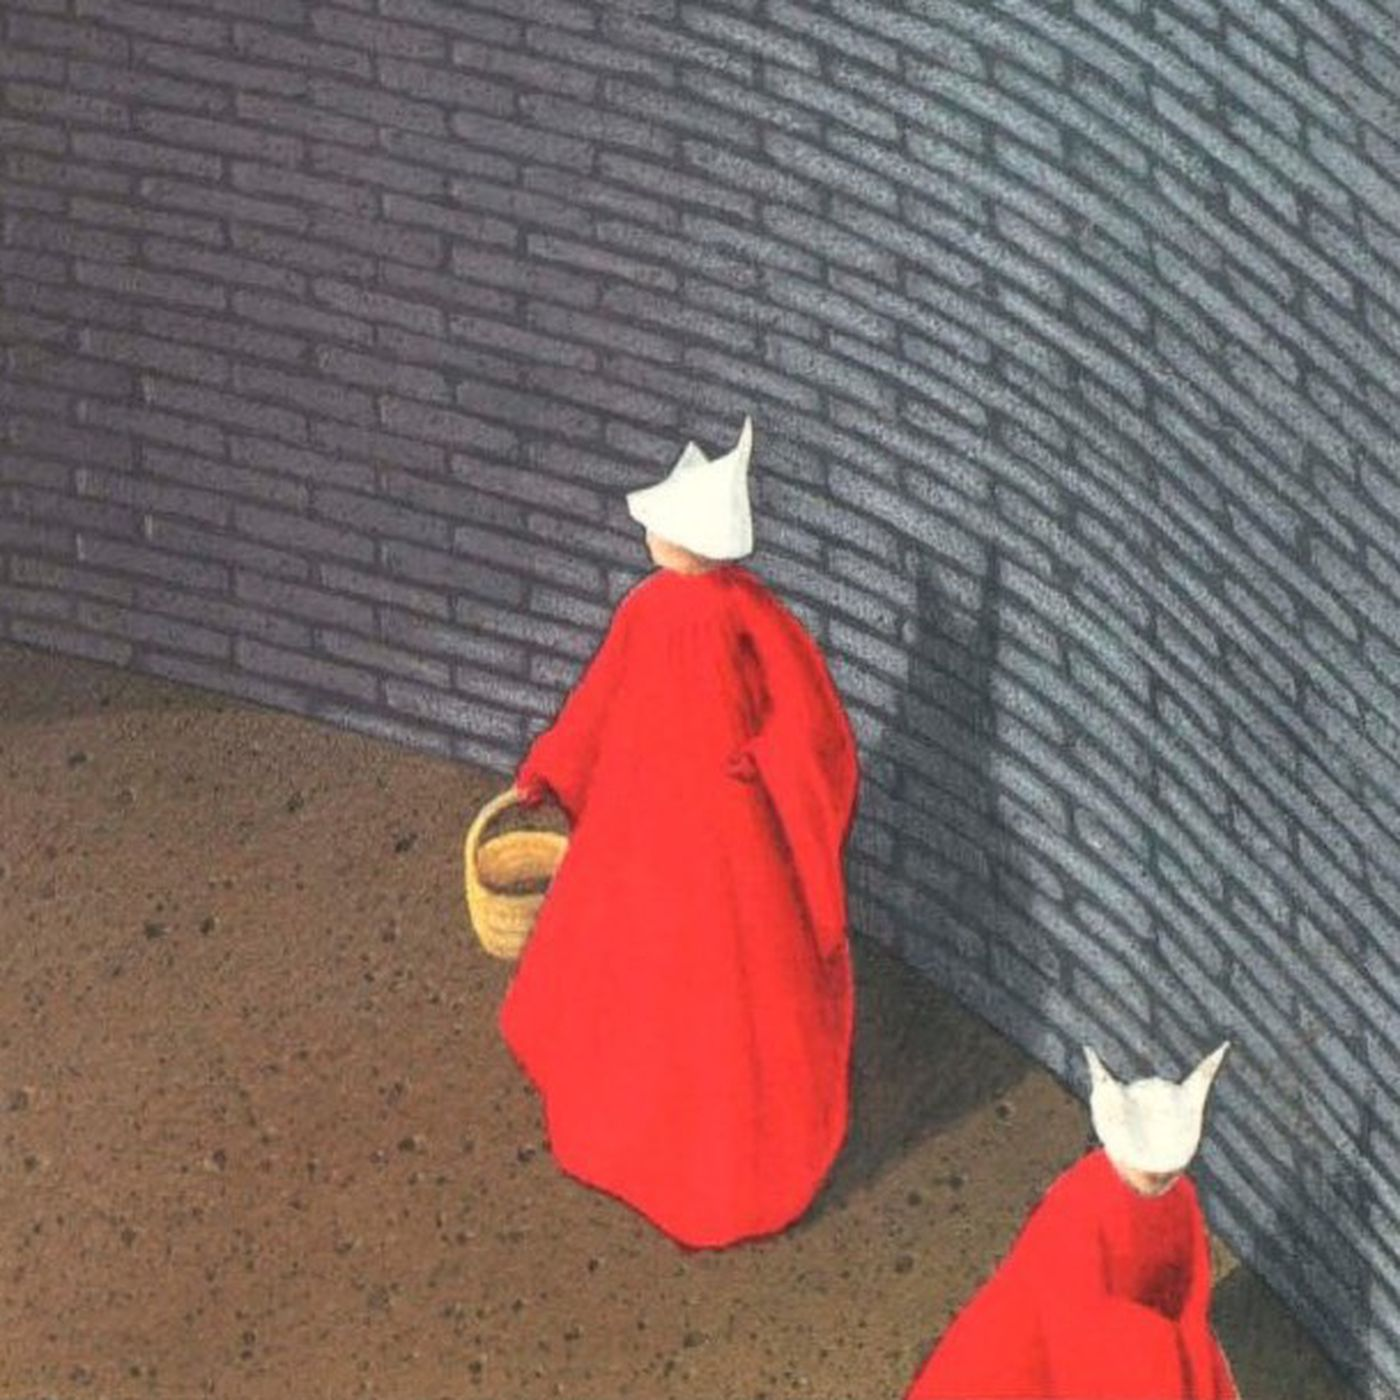 In Trump S America The Handmaid S Tale Matters More Than Ever The Verge